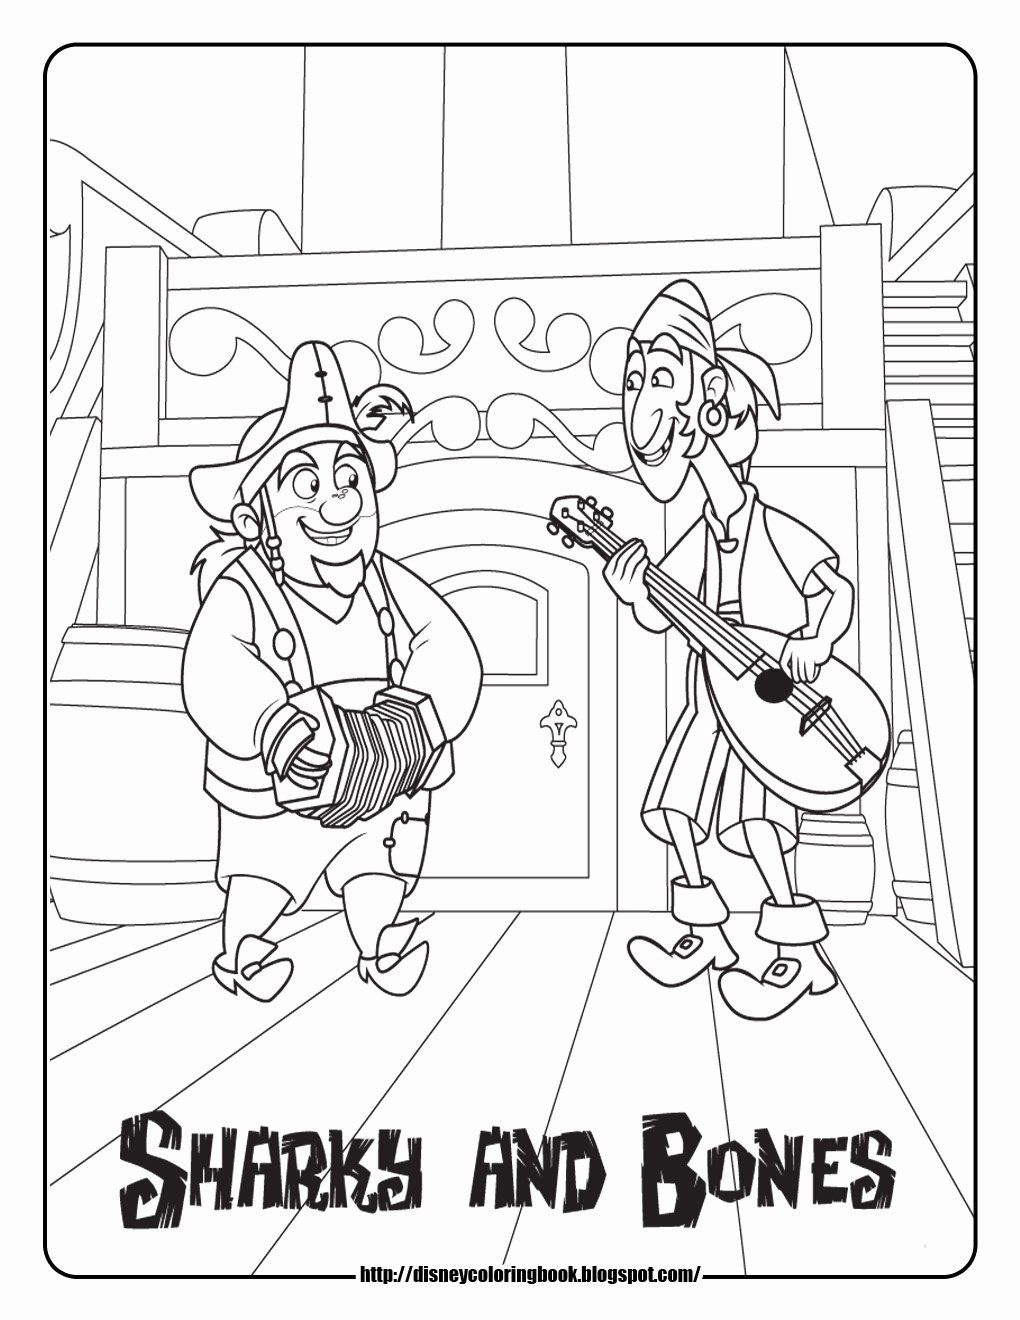 Pirate Coloring Pages For Preschool Elegant The Best Free Never Coloring Page Images Download From 120 [ jpg ]